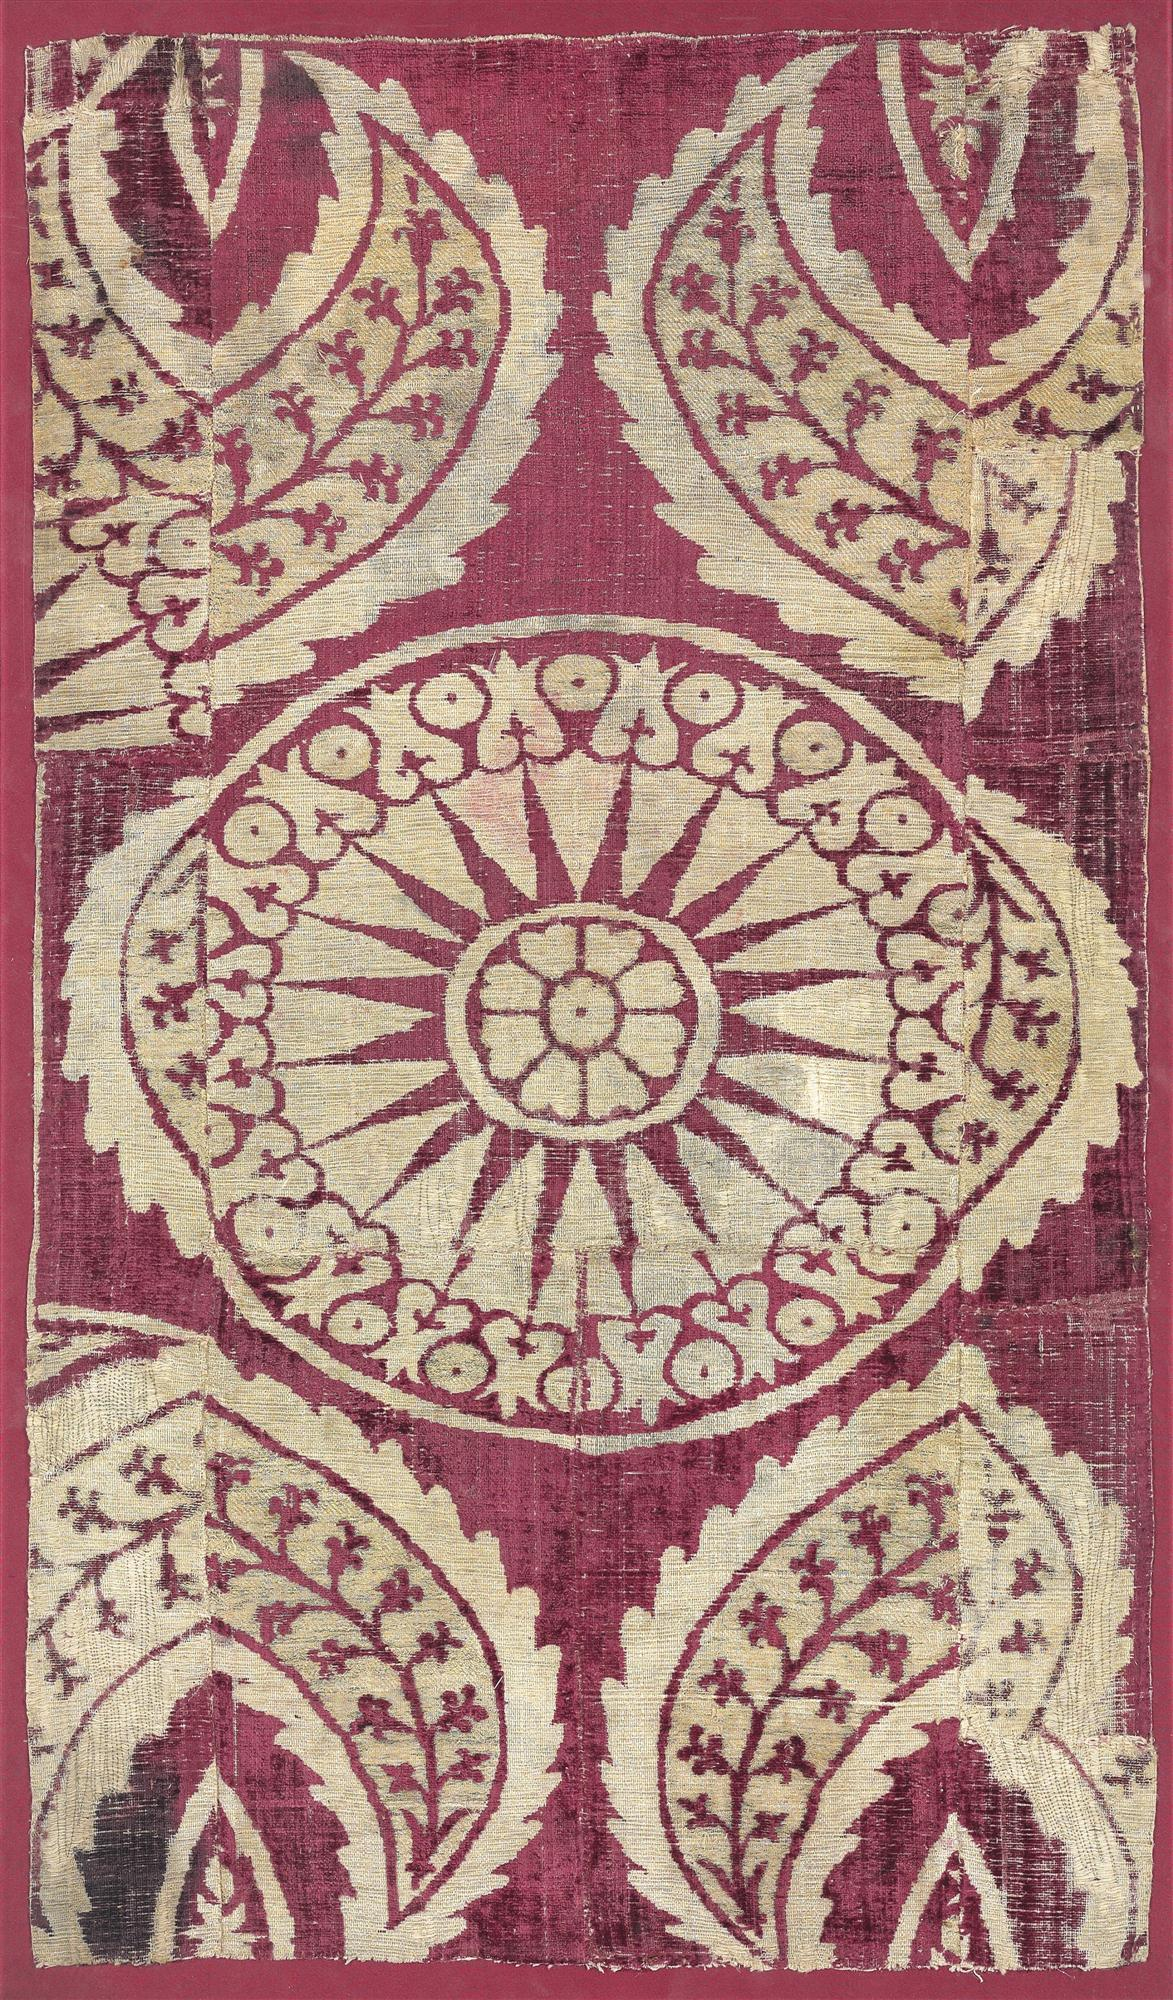 1000 Images About Ottoman Textile On Pinterest